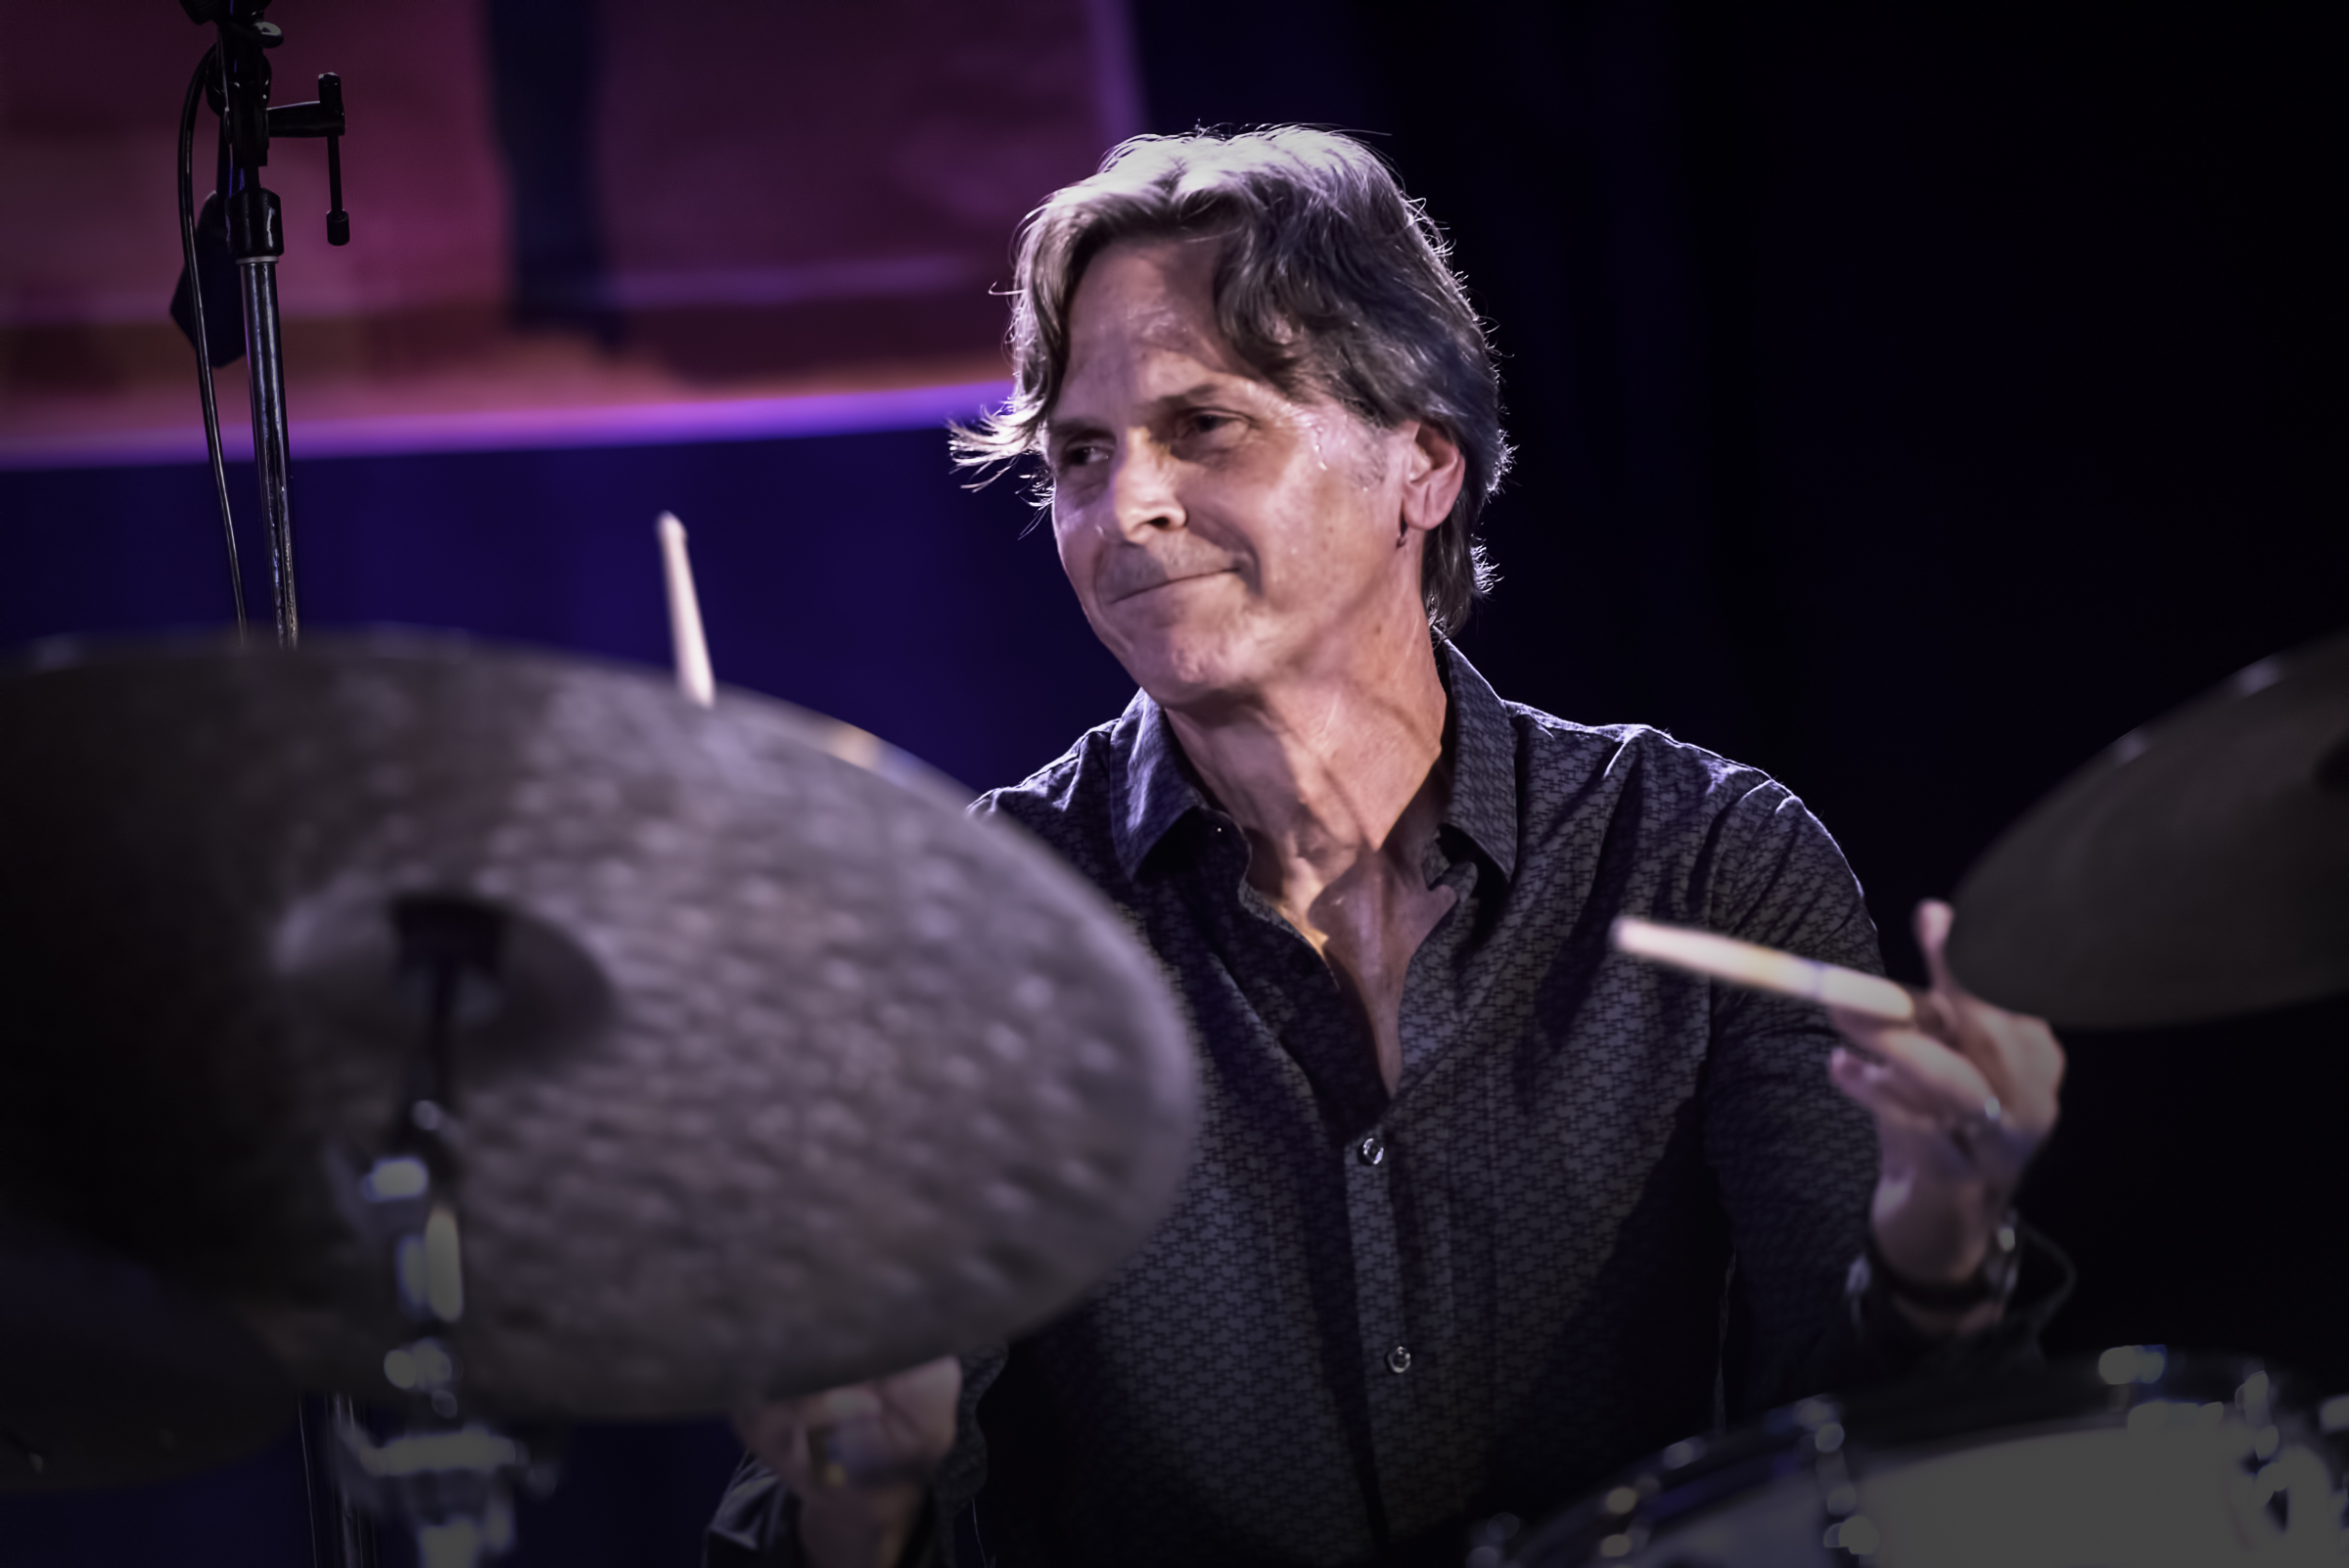 John Bishop with the Chano Dominguez Trio at the Monterey Jazz Festival